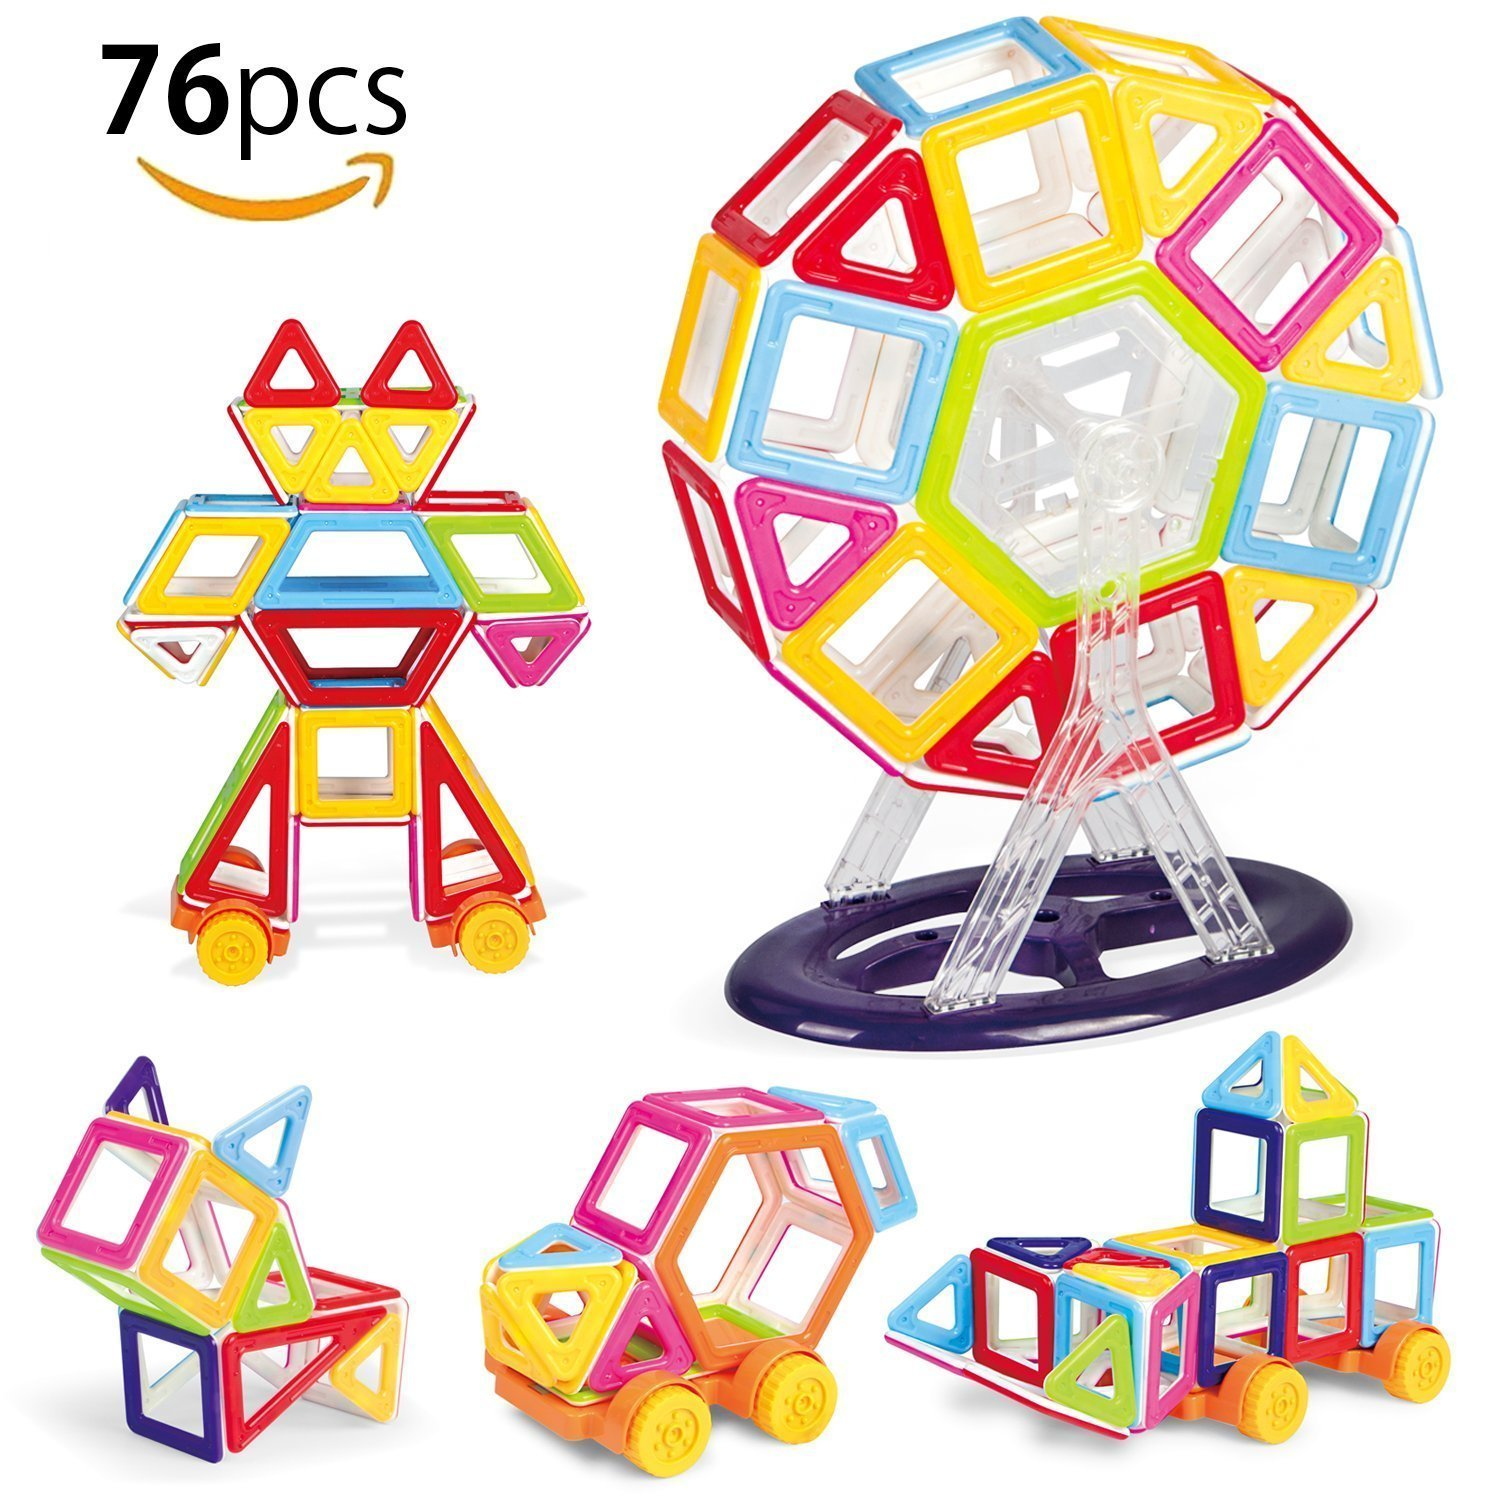 Minihorse 76 PCS Magnetic Building Blocks Educational Toys Magnet Tiles Set Stacking Blocks for 5-8 years old Kids